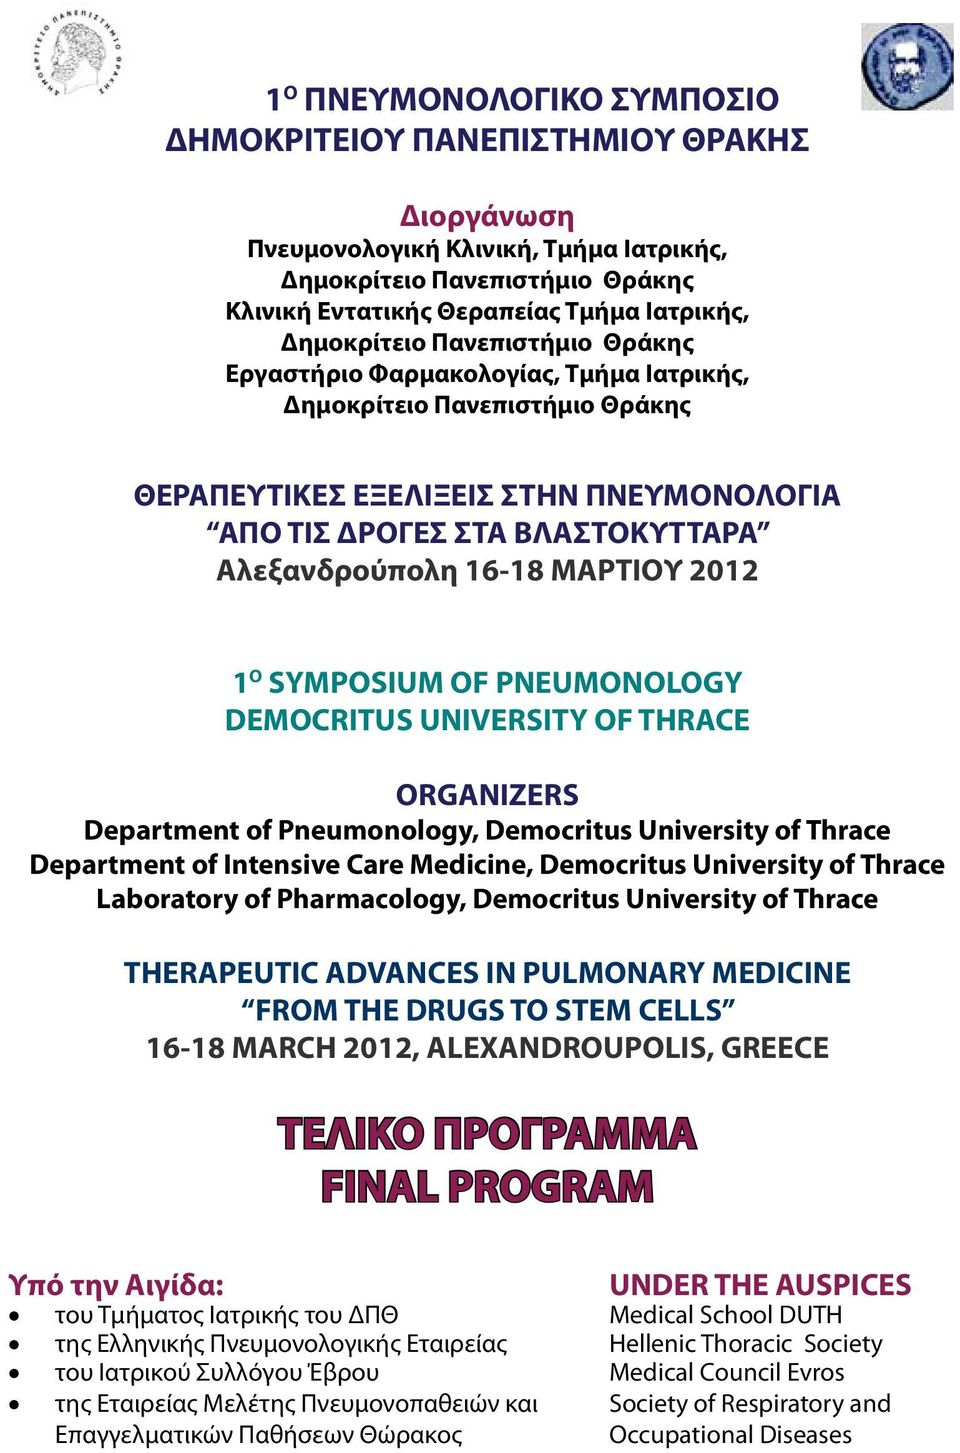 16-18 ΜΑΡΤΙΟΥ 2012 1 Ο SYMPOSIUM OF PNEUMONOLOGY DEMOCRITUS UNIVERSITY OF THRACE ORGANIZERS Department of Pneumonology, Democritus University of Thrace Department of Intensive Care Medicine,